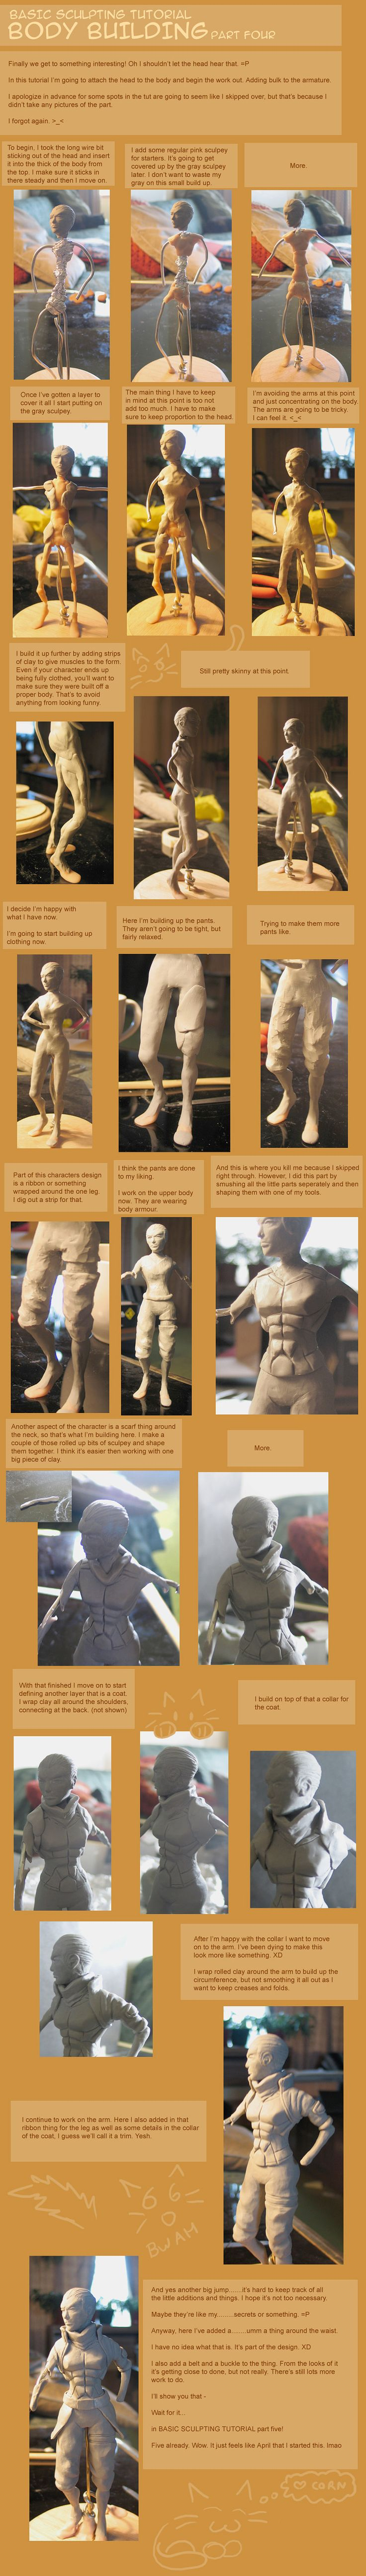 http://fc07.deviantart.net/fs17/f/2007/188/c/8/Tutorial_4___Body_Building_by_Rennard.jpg